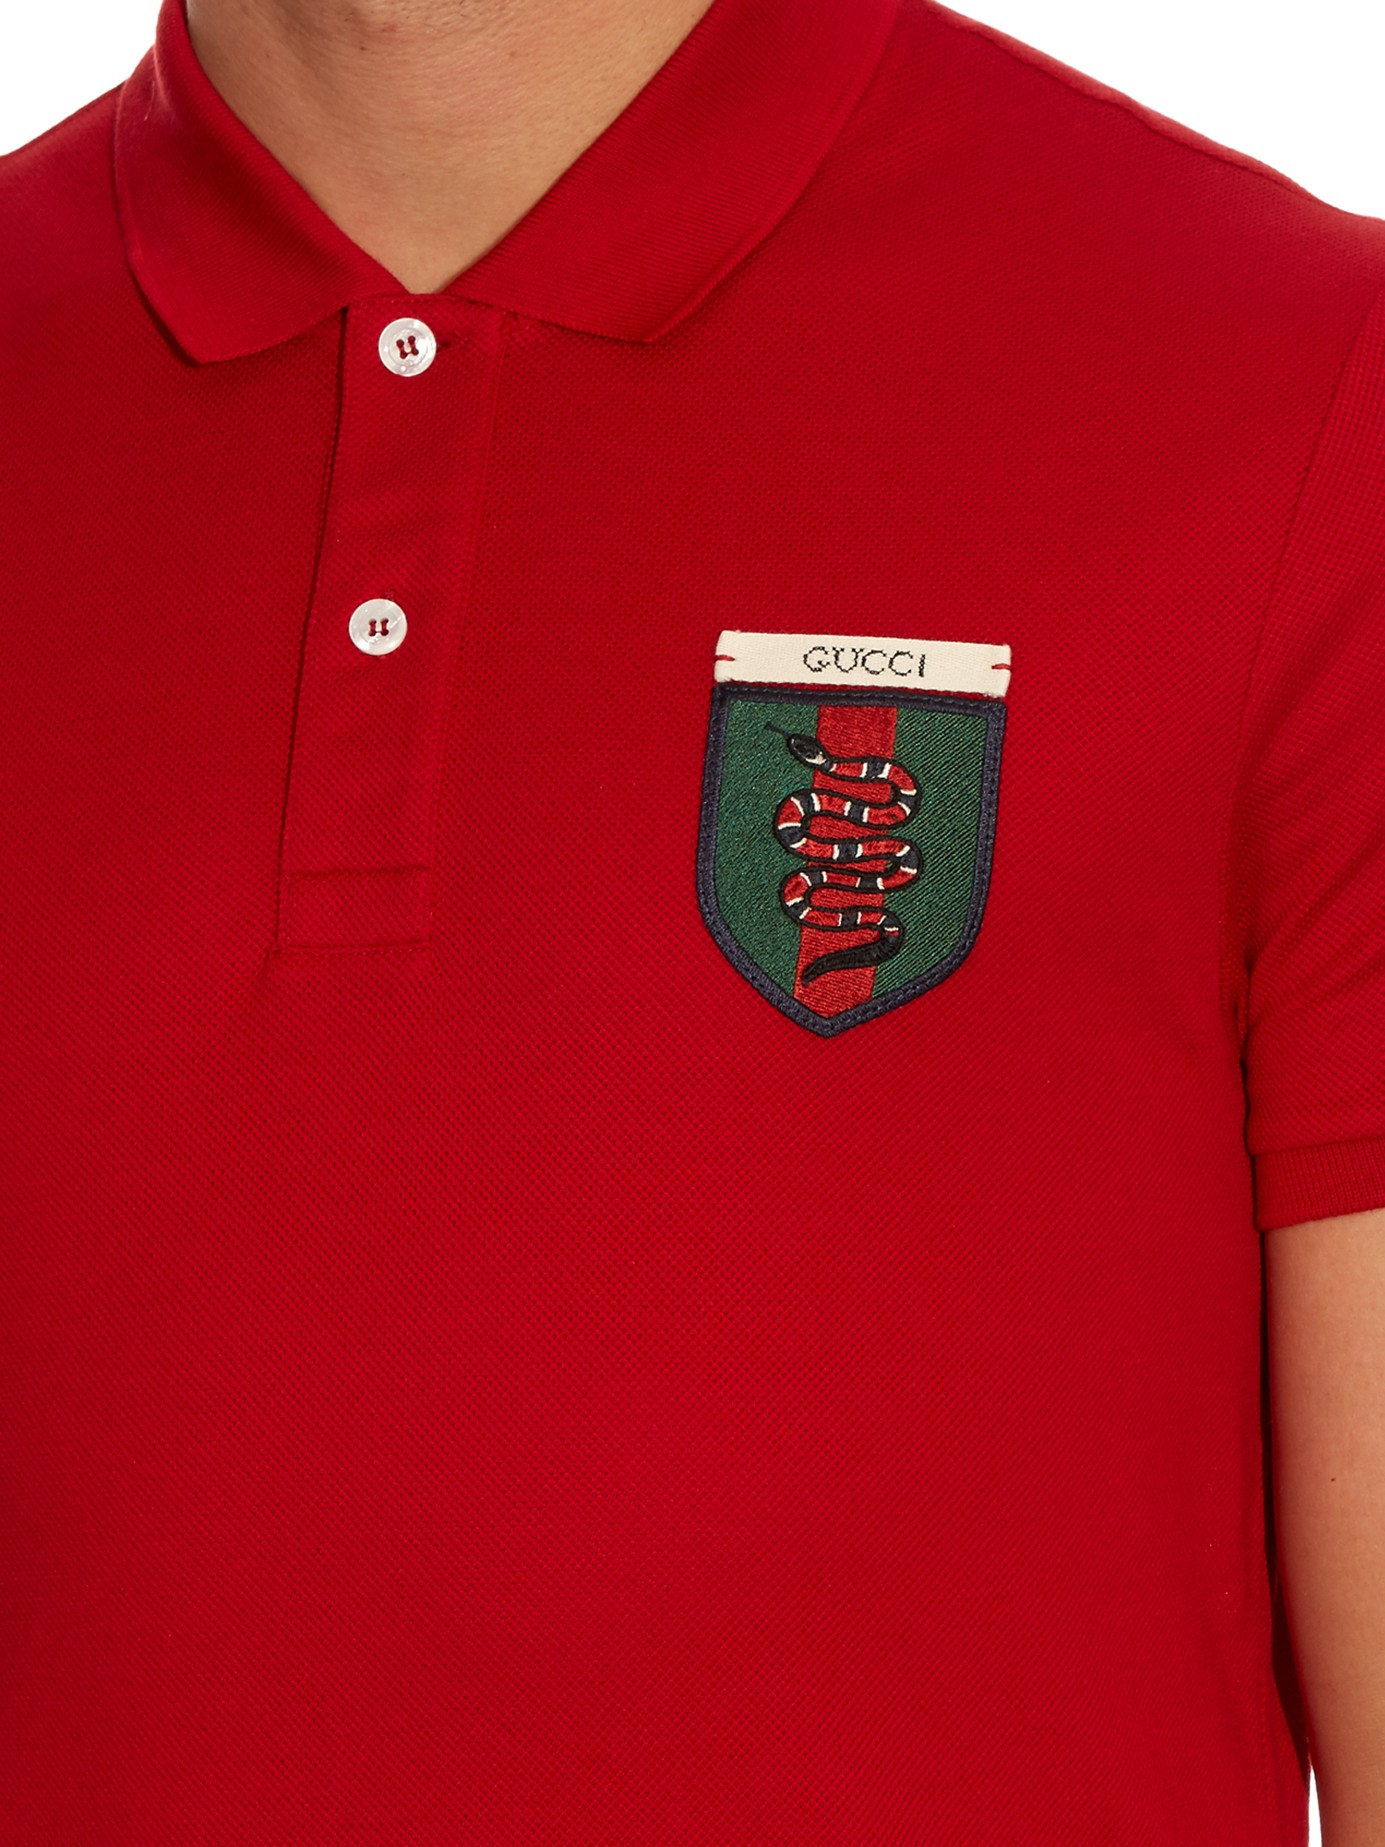 Gucci Snake Crest Cotton Blend Polo Shirt For Men Lyst